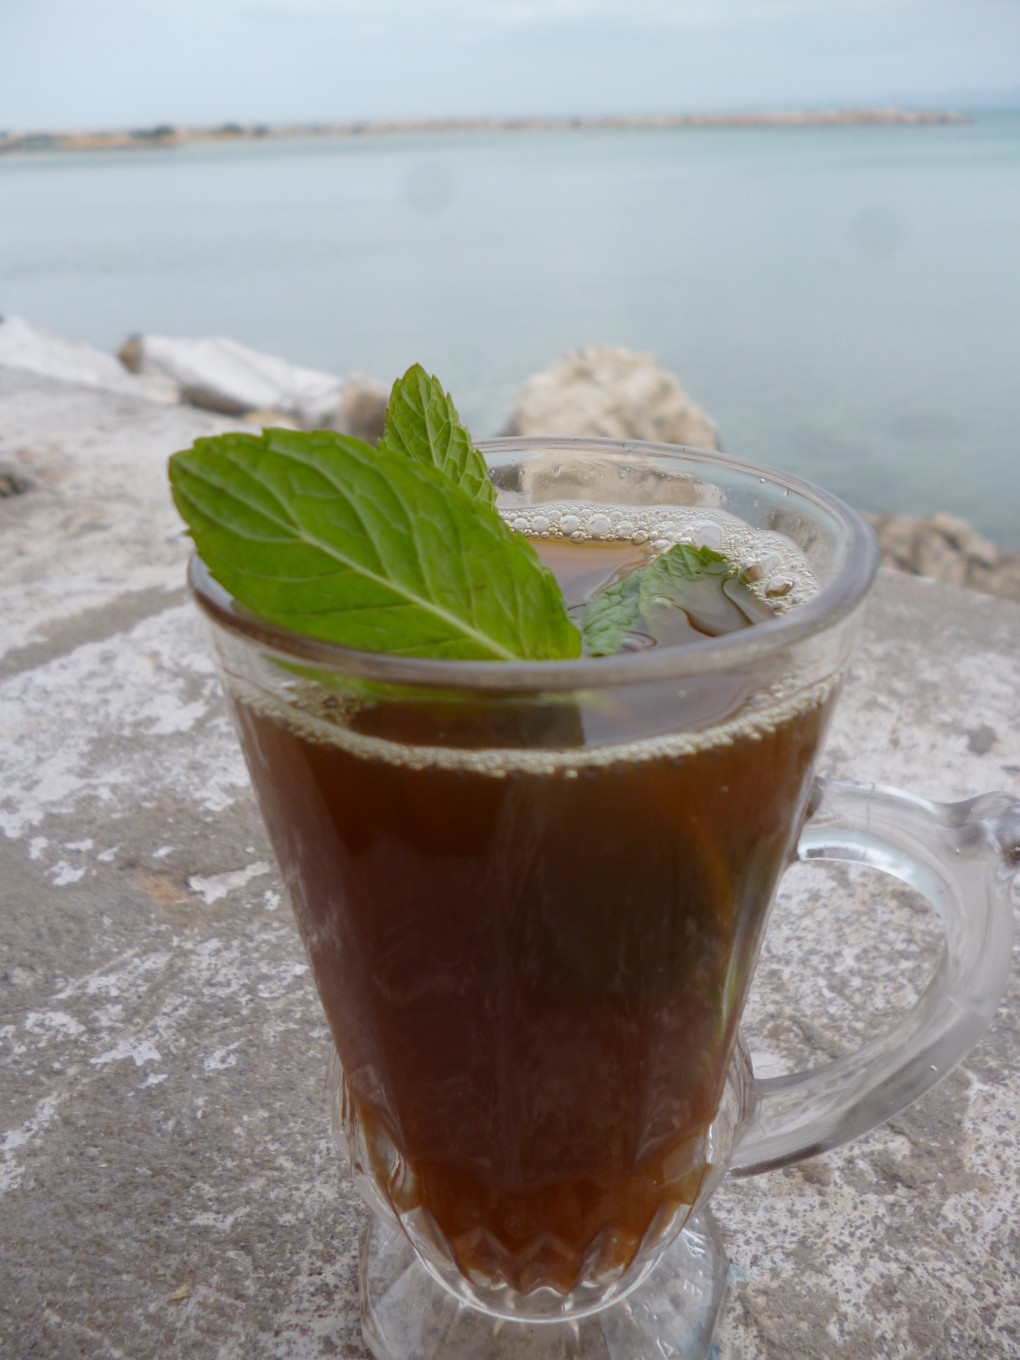 the menthe tunisien